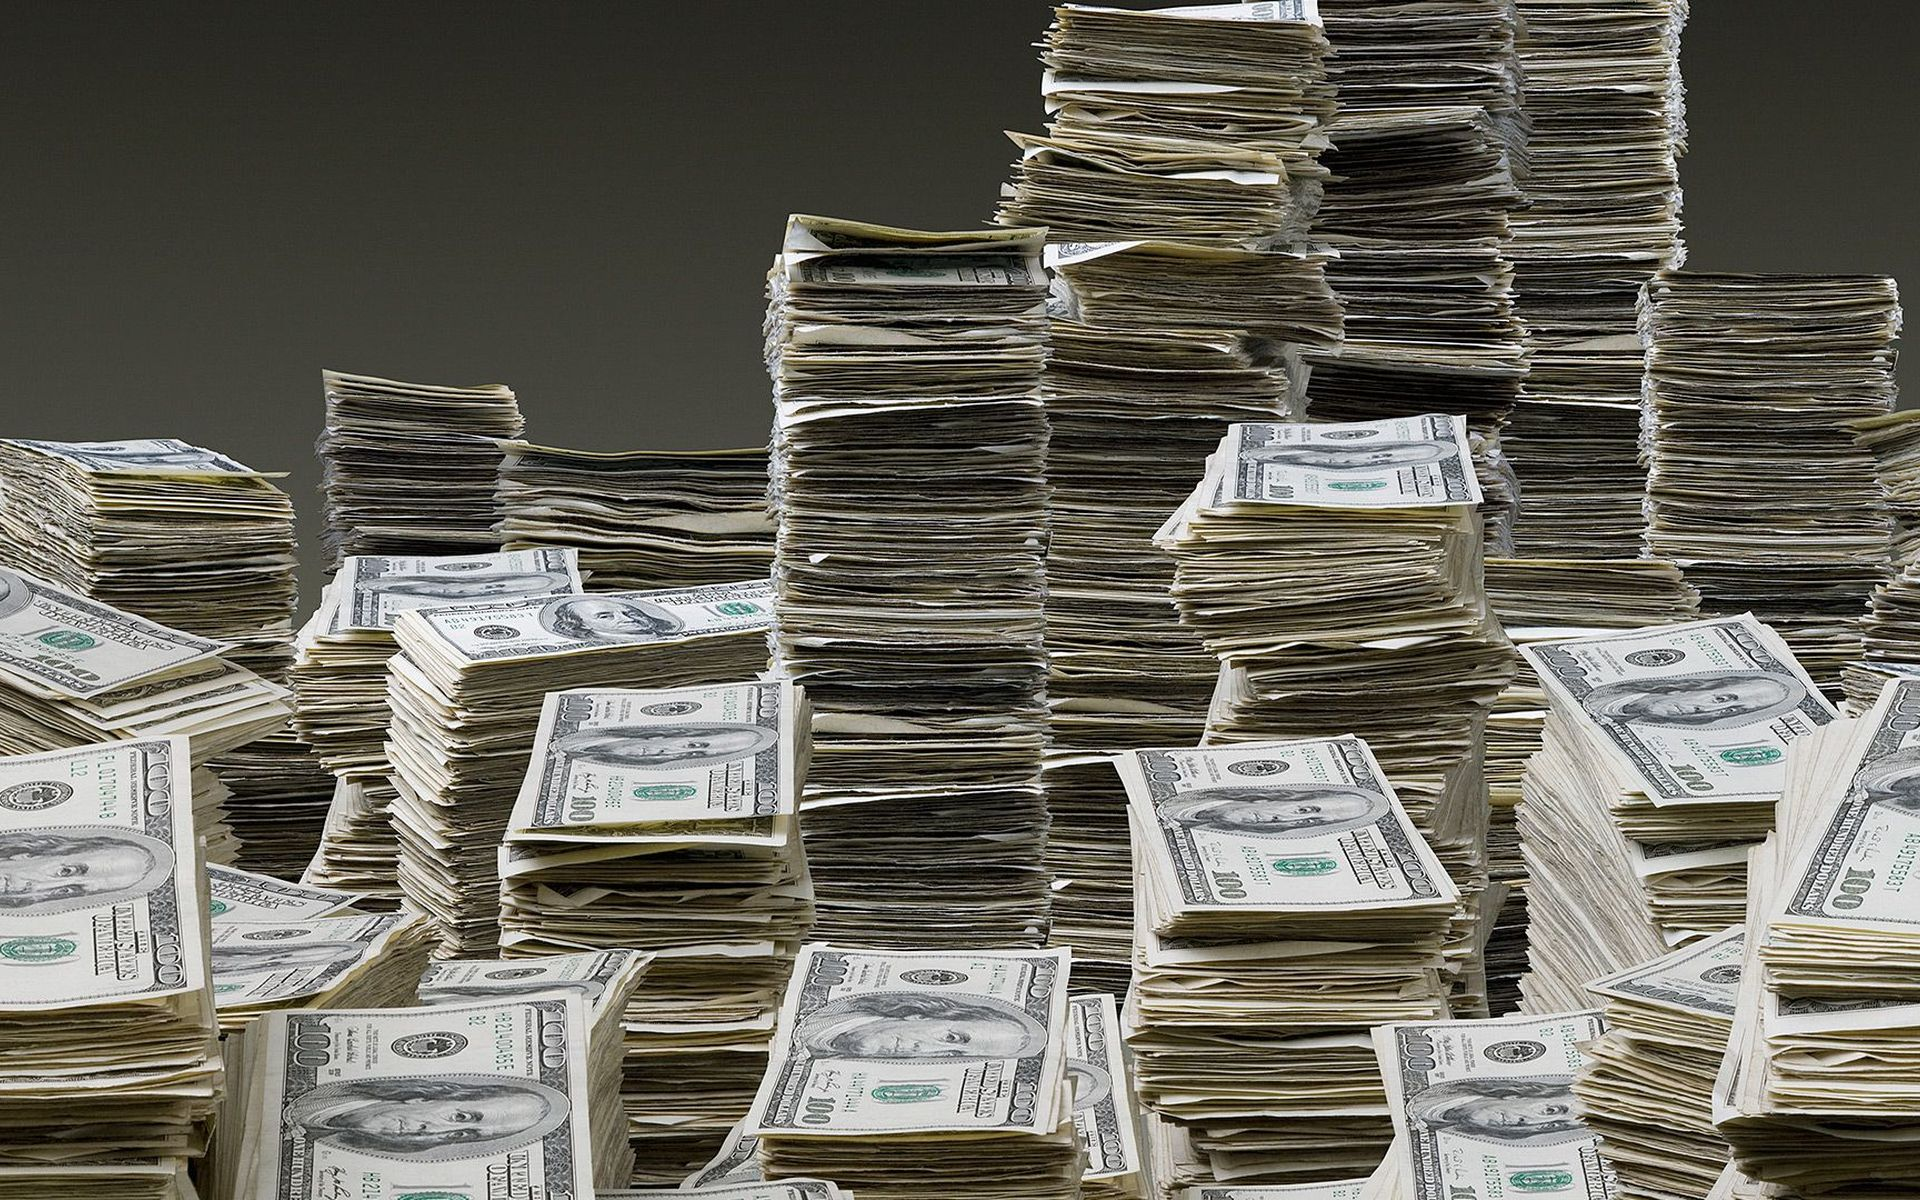 money-hd-background_1_1920x1200